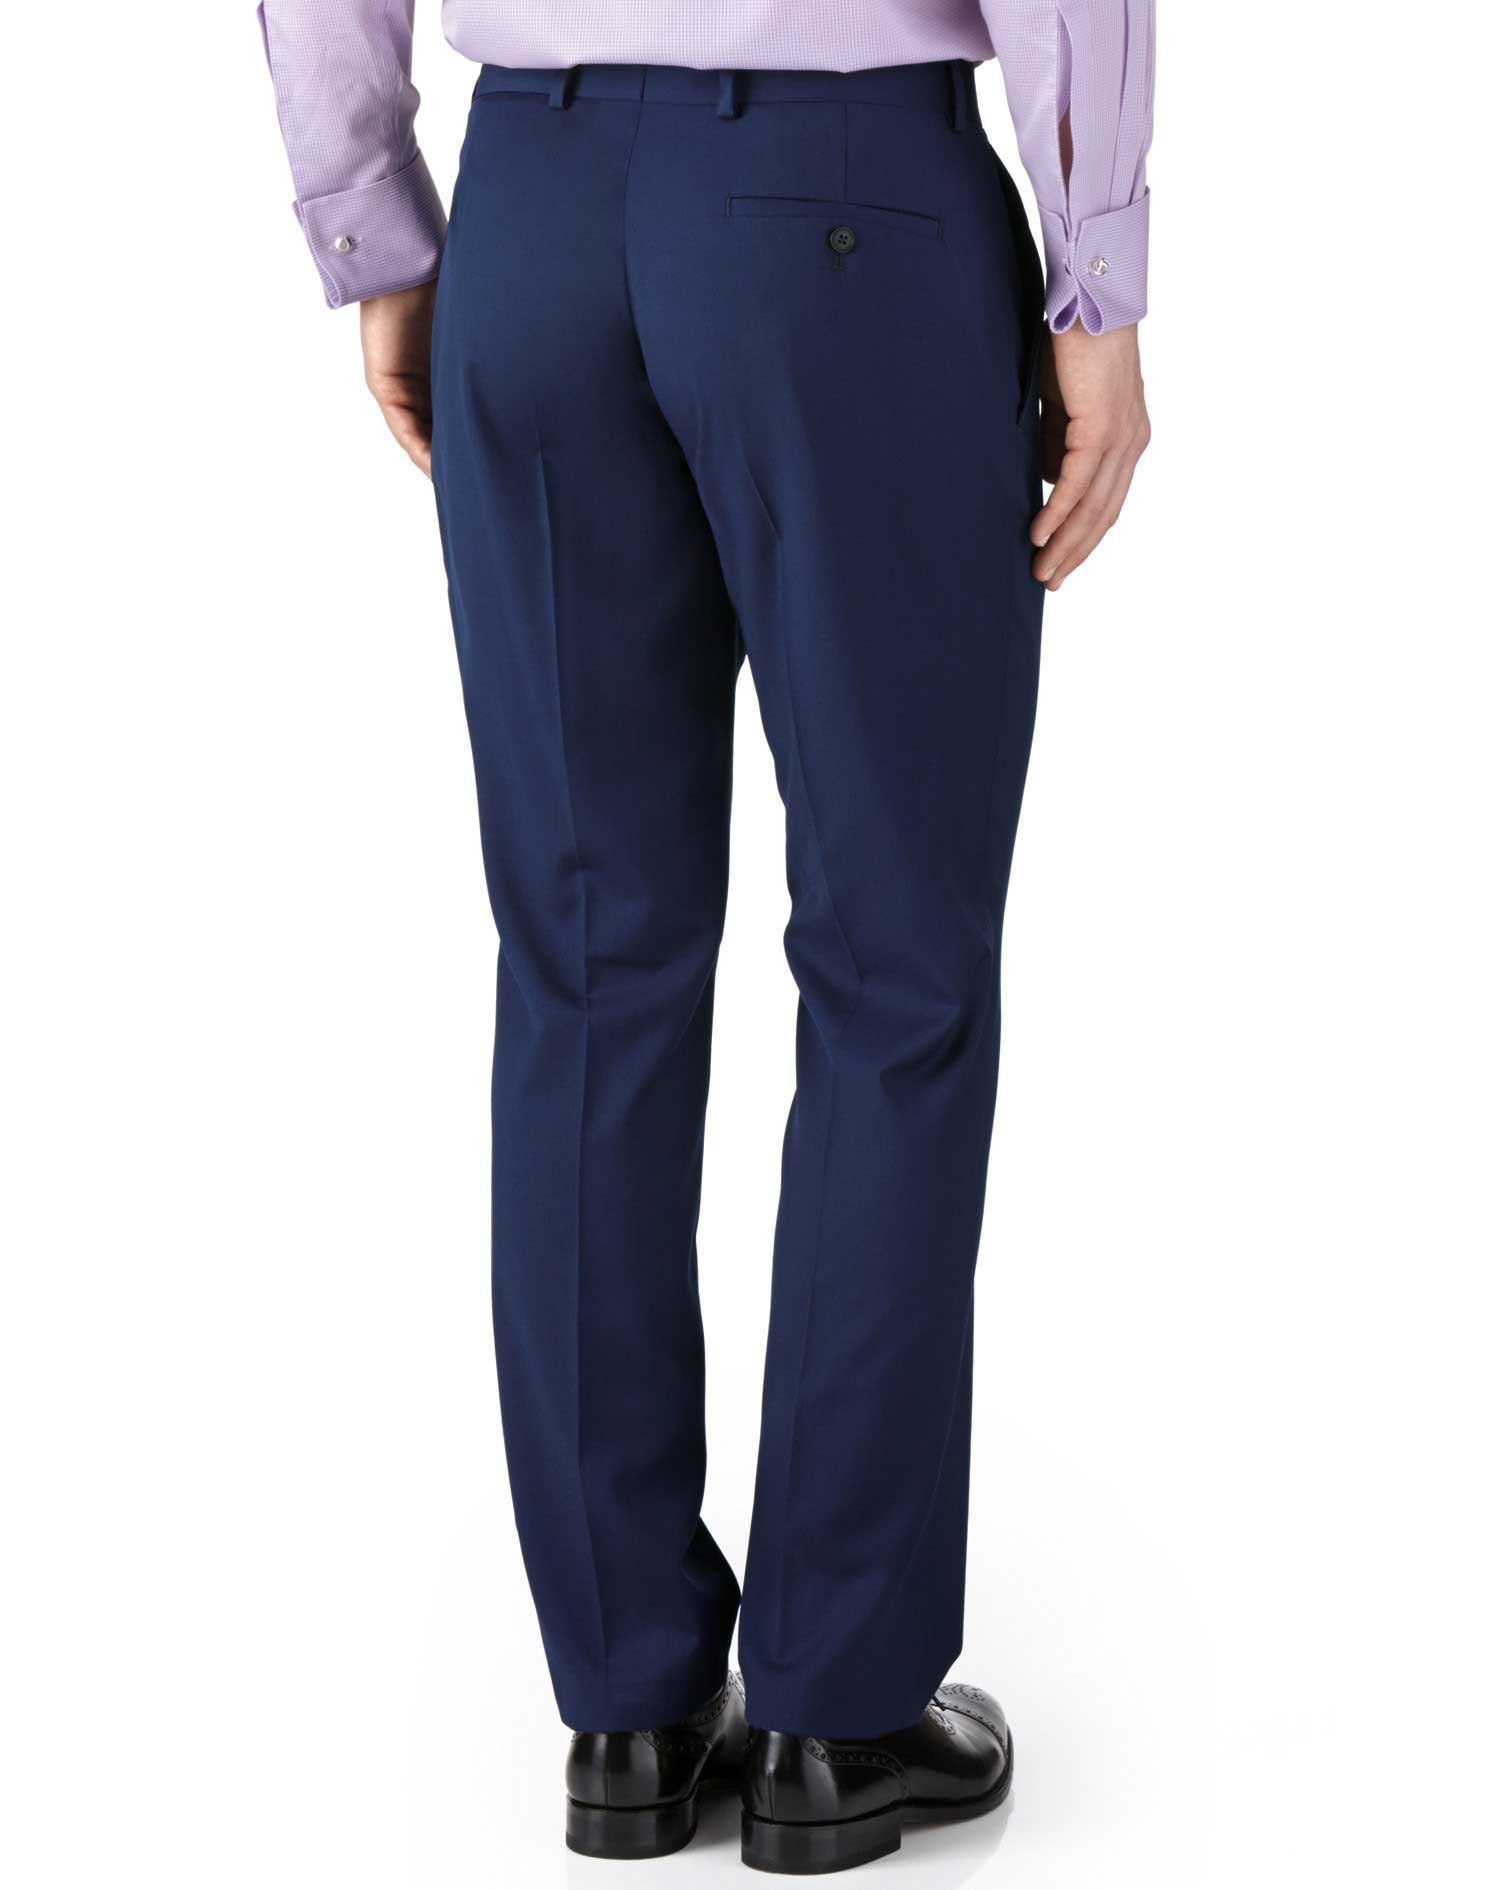 Royal blue classic fit twill business suit pants